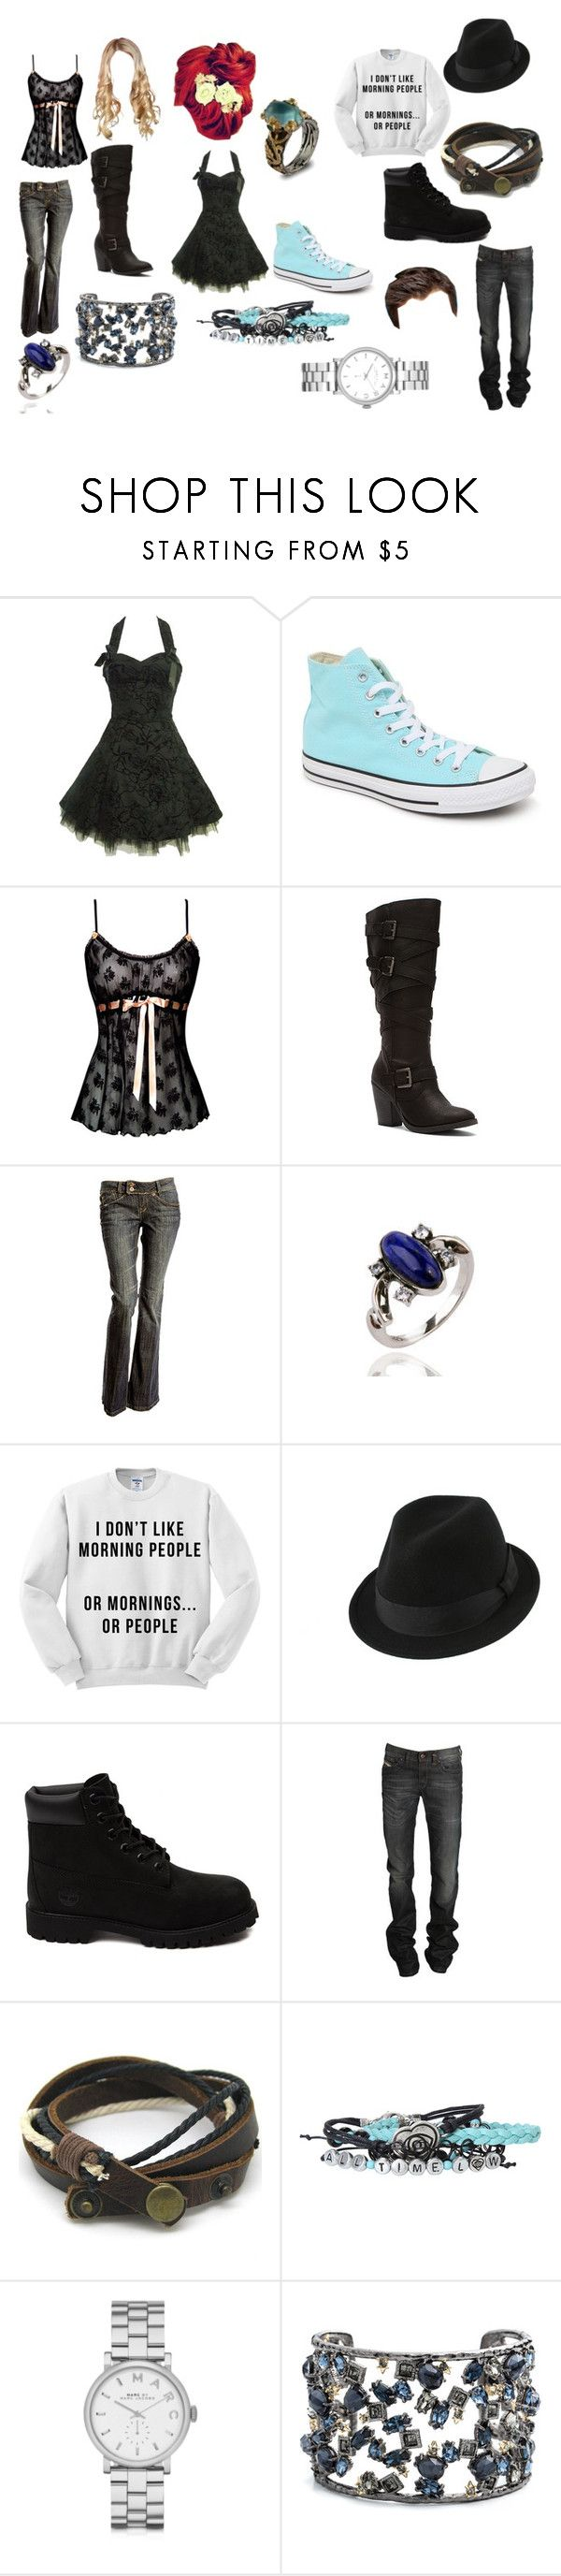 """""""11"""" by secretly-a-fangirl ❤ liked on Polyvore featuring Converse, Madden Girl, Timberland, Diesel, Hot Topic, Marc by Marc Jacobs, Alexis Bittar and Emma Chapman"""